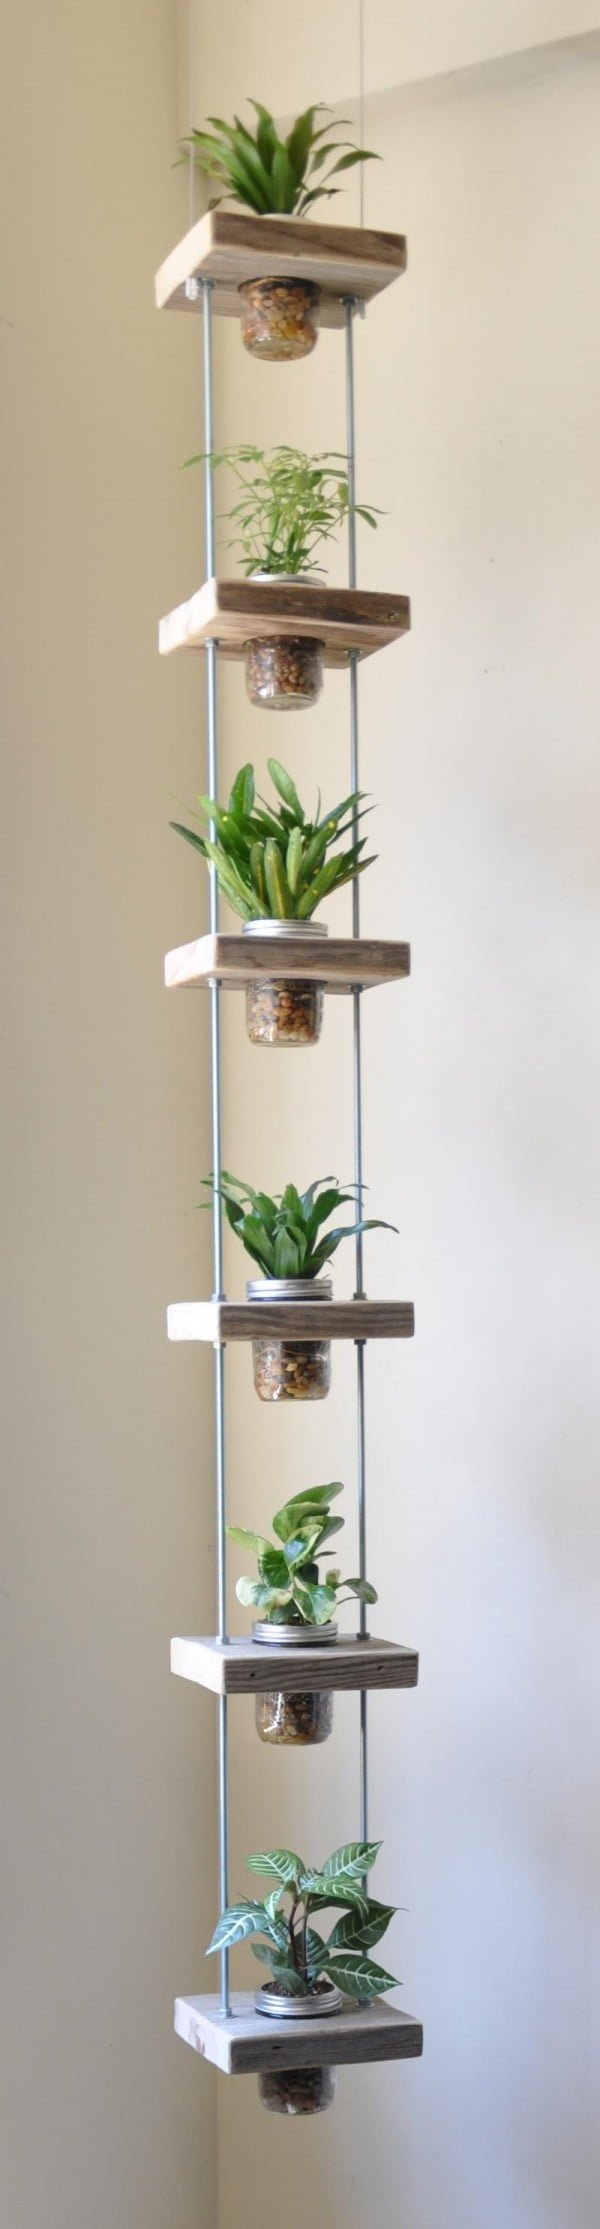 Check out how to build this DIY vertical jar herb garden